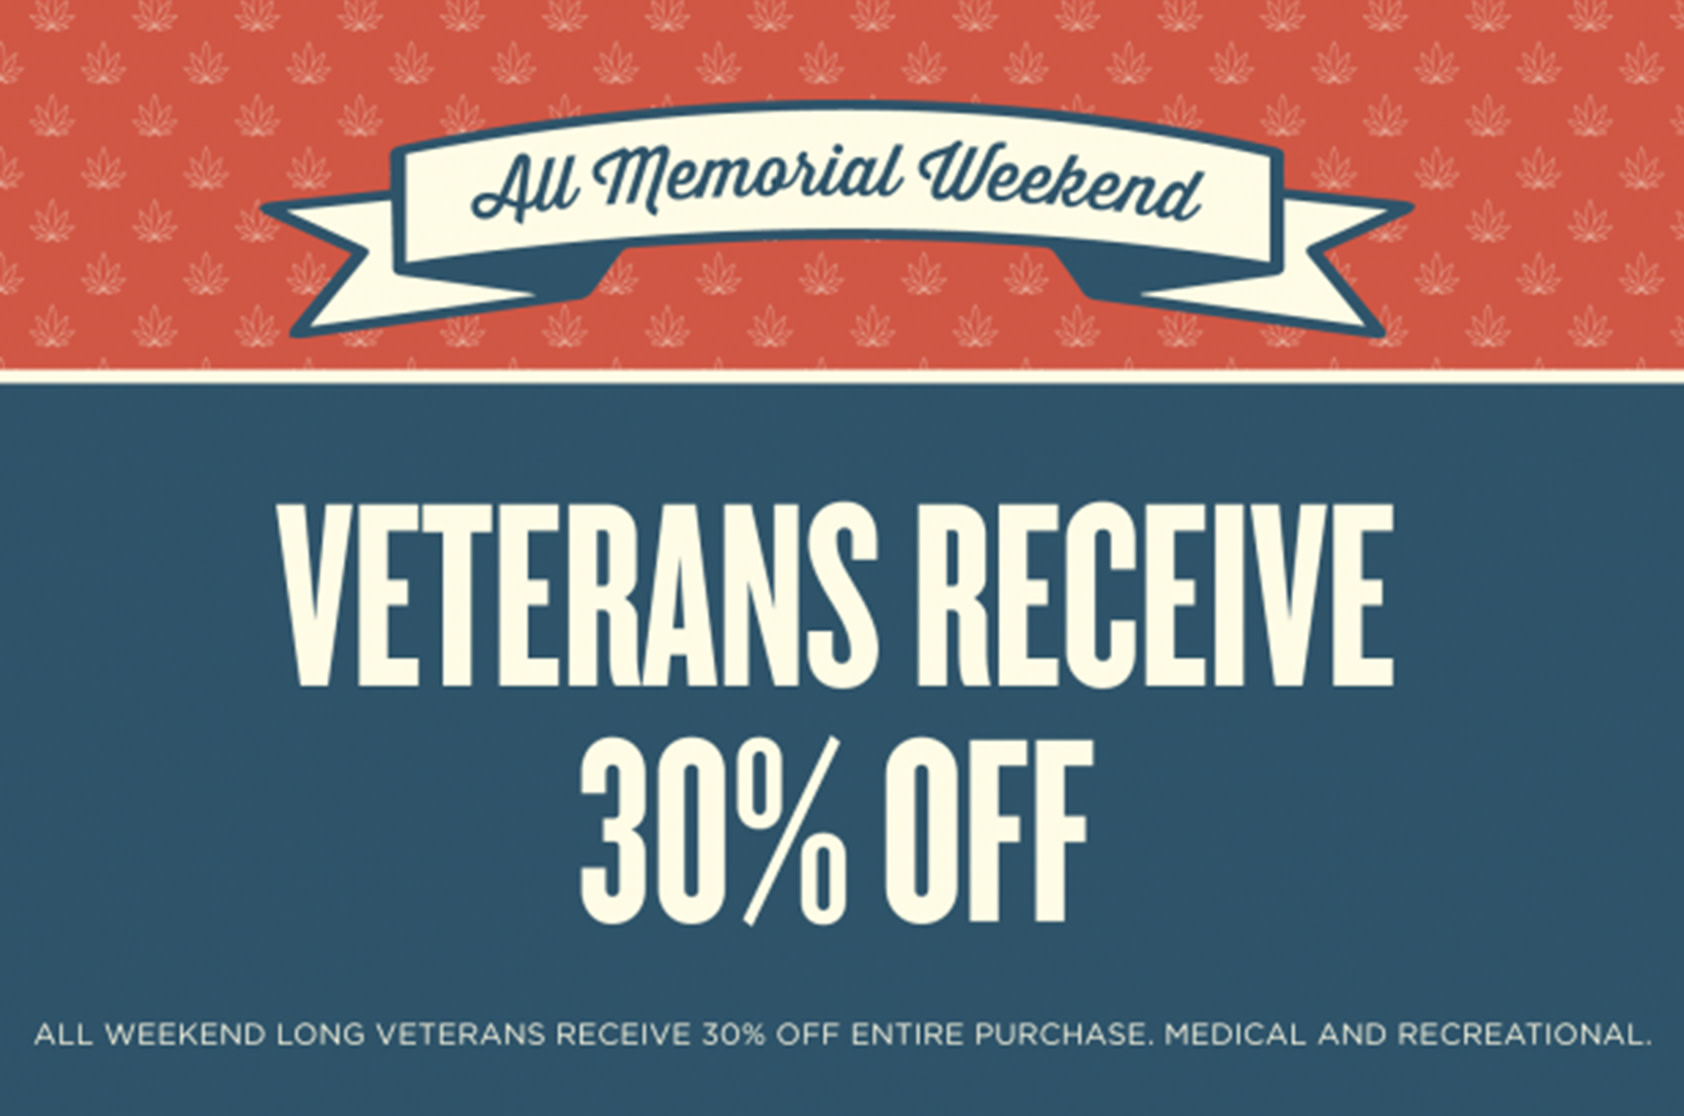 Veterans Receive 30% Off